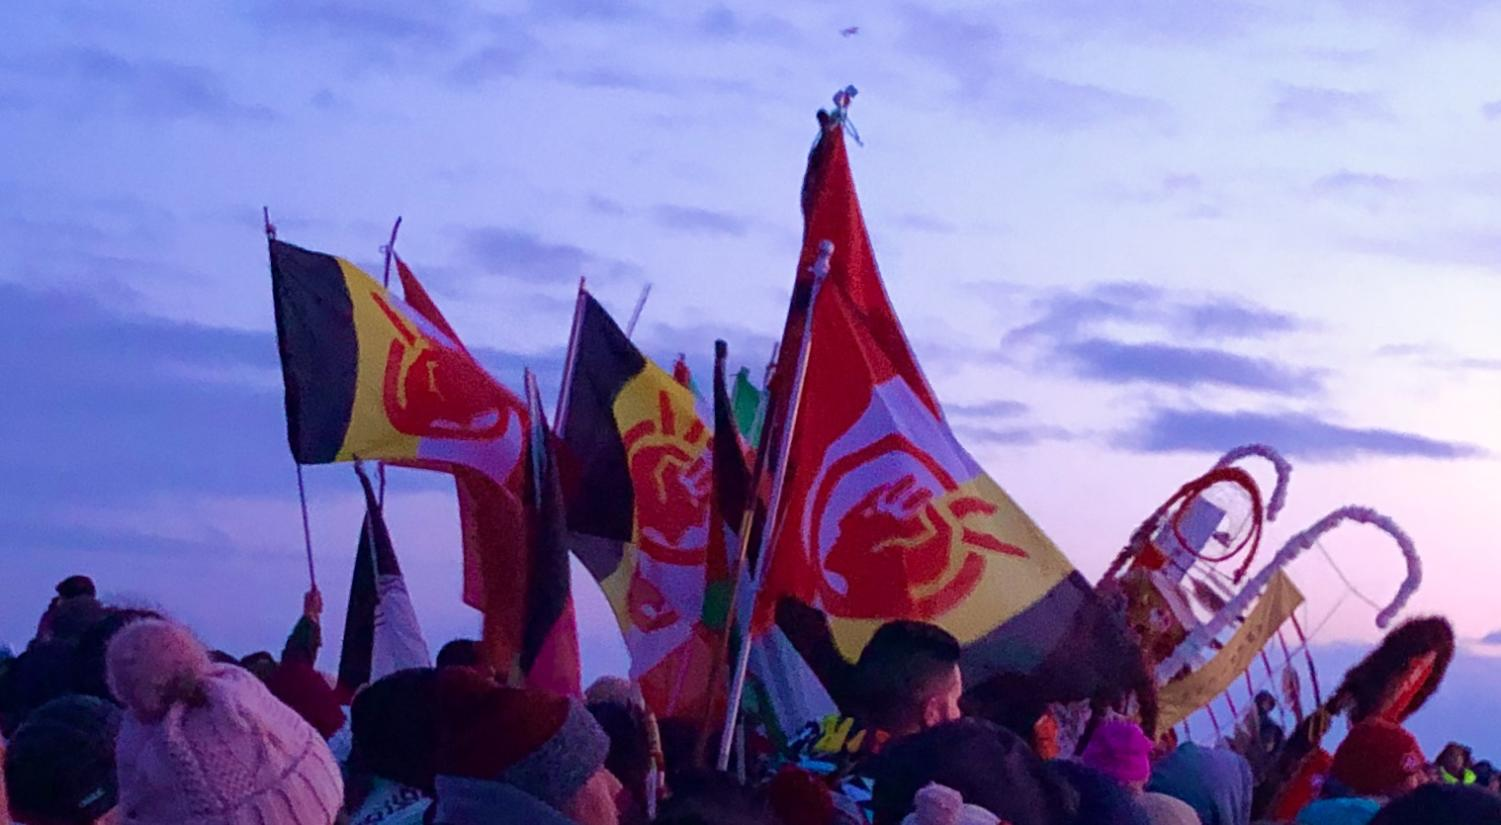 The Red Nation flag and AIM banner fly high in front of the San Francisco Sunrise. Organizers asked all attendees not to photograph the dancers out of respect for them praying.